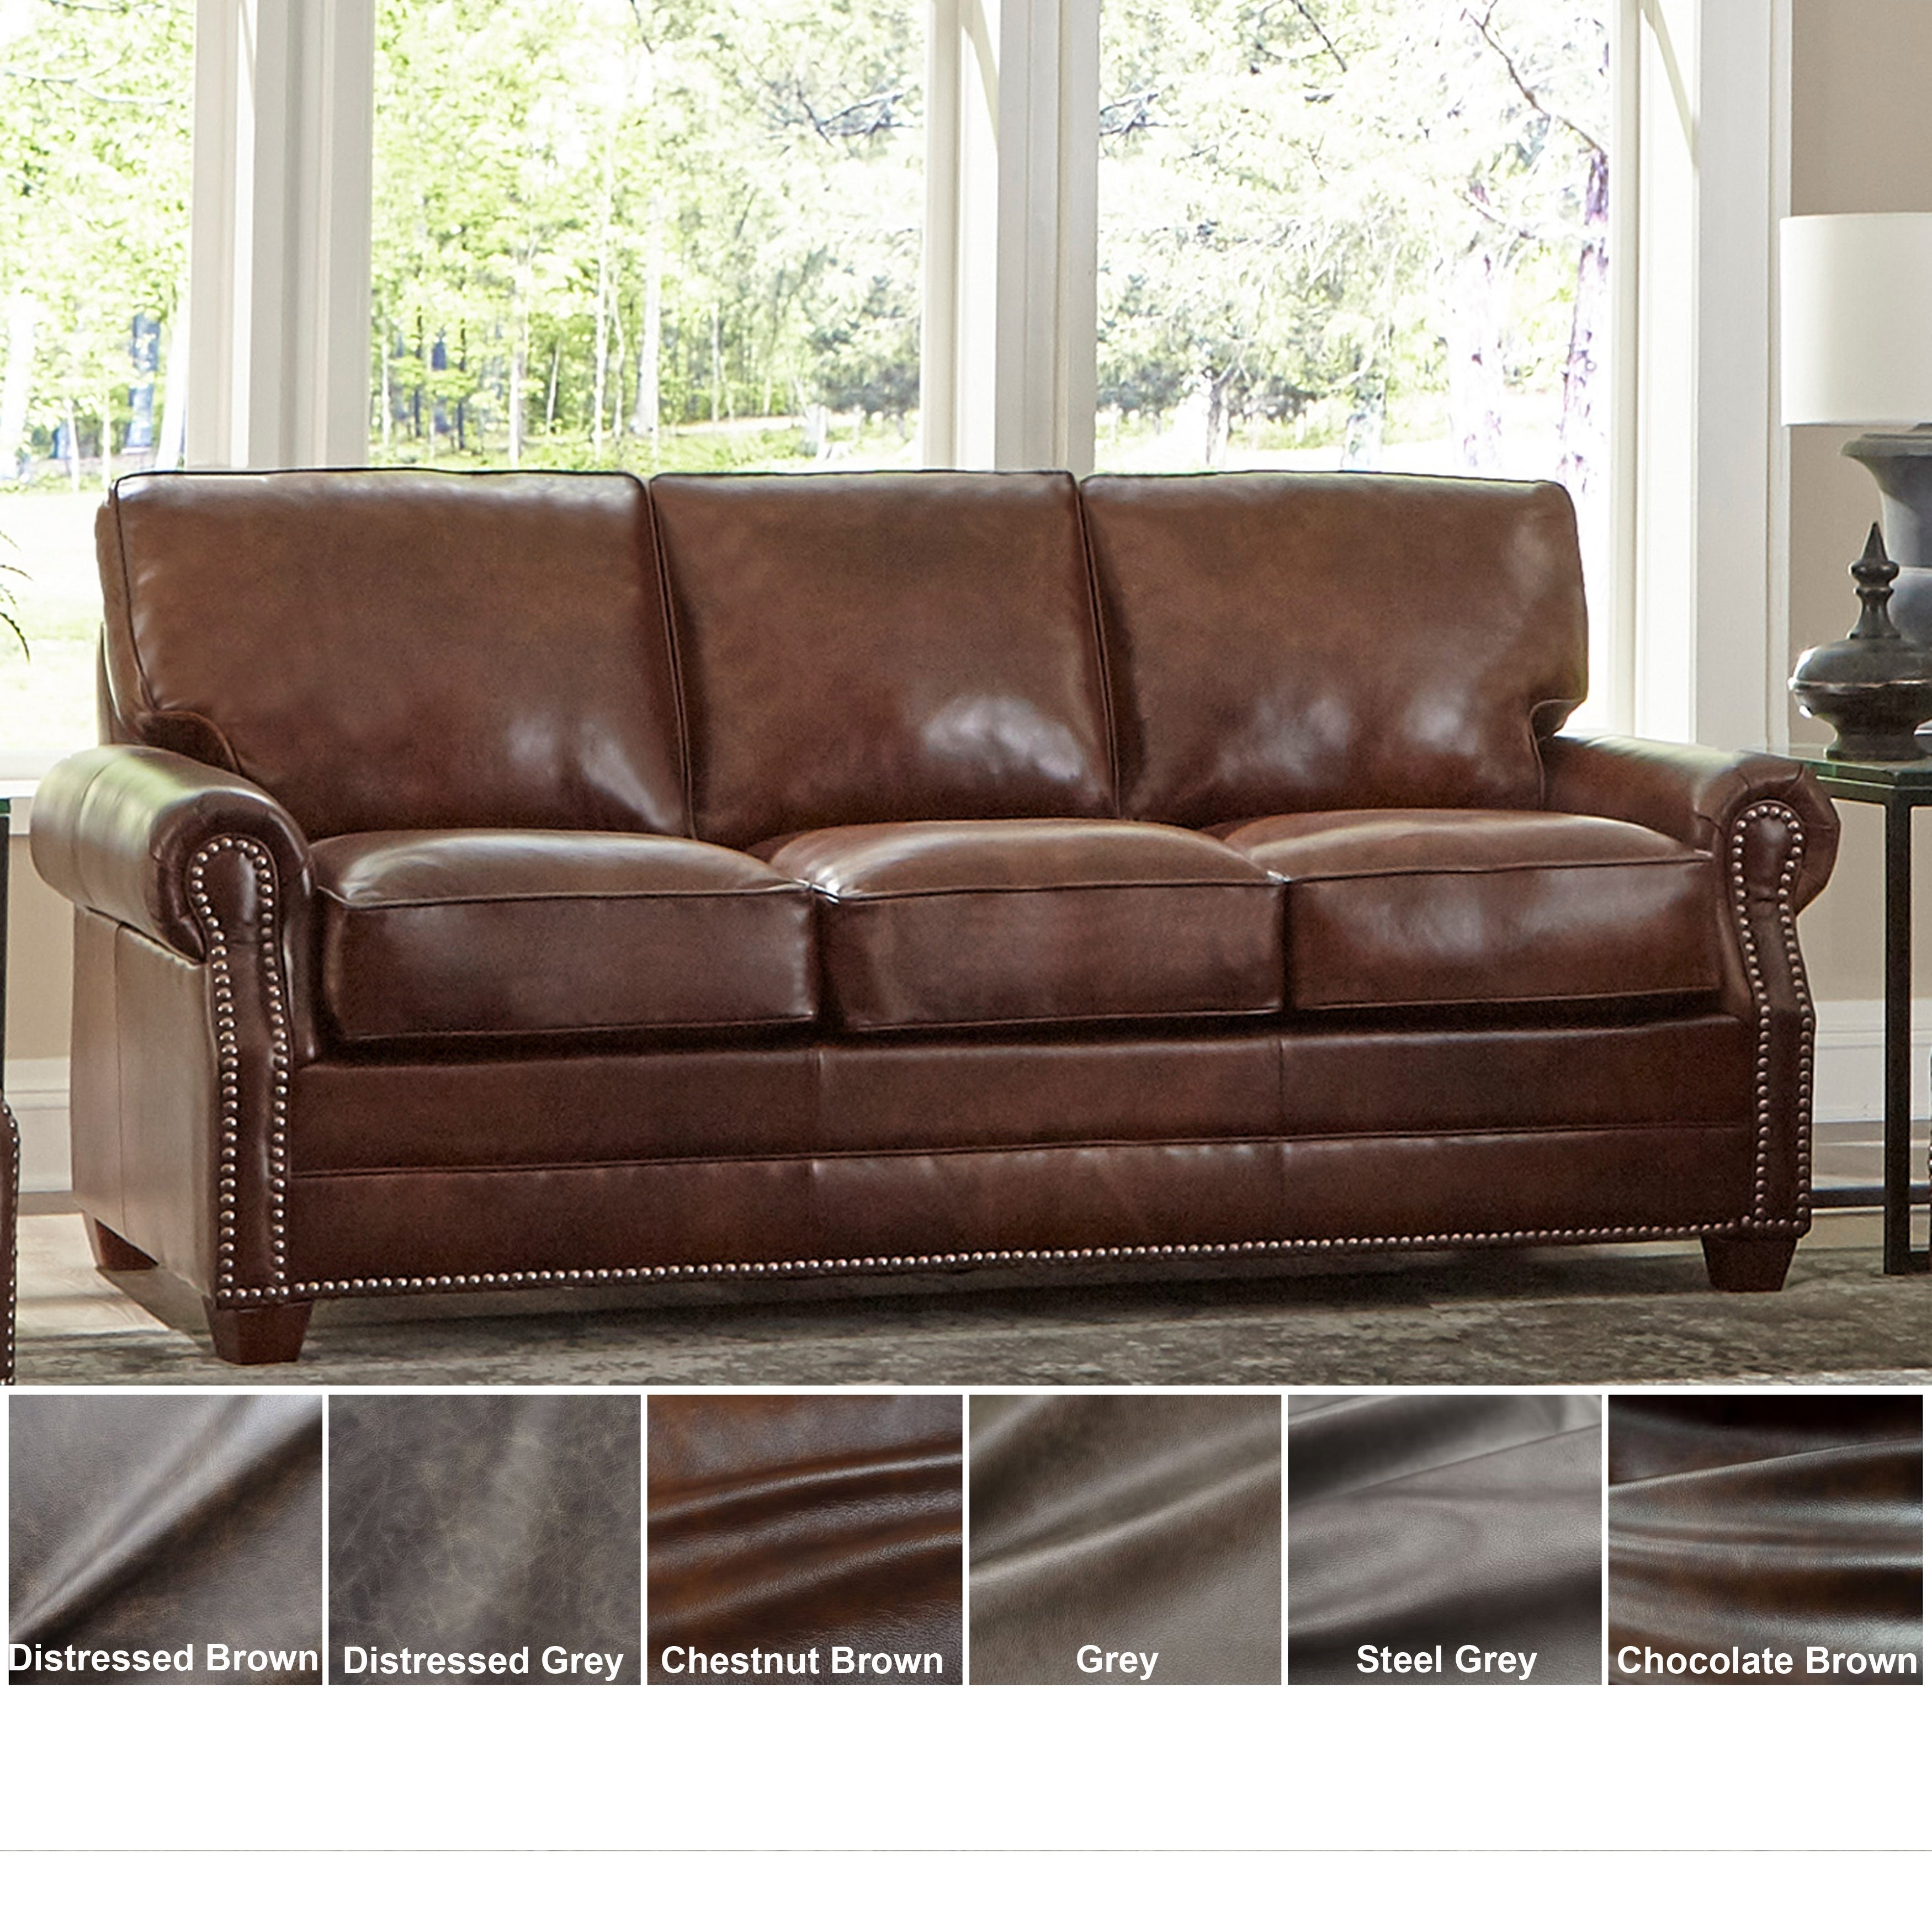 Made In Usa Revo Top Grain Leather Sofa Bed